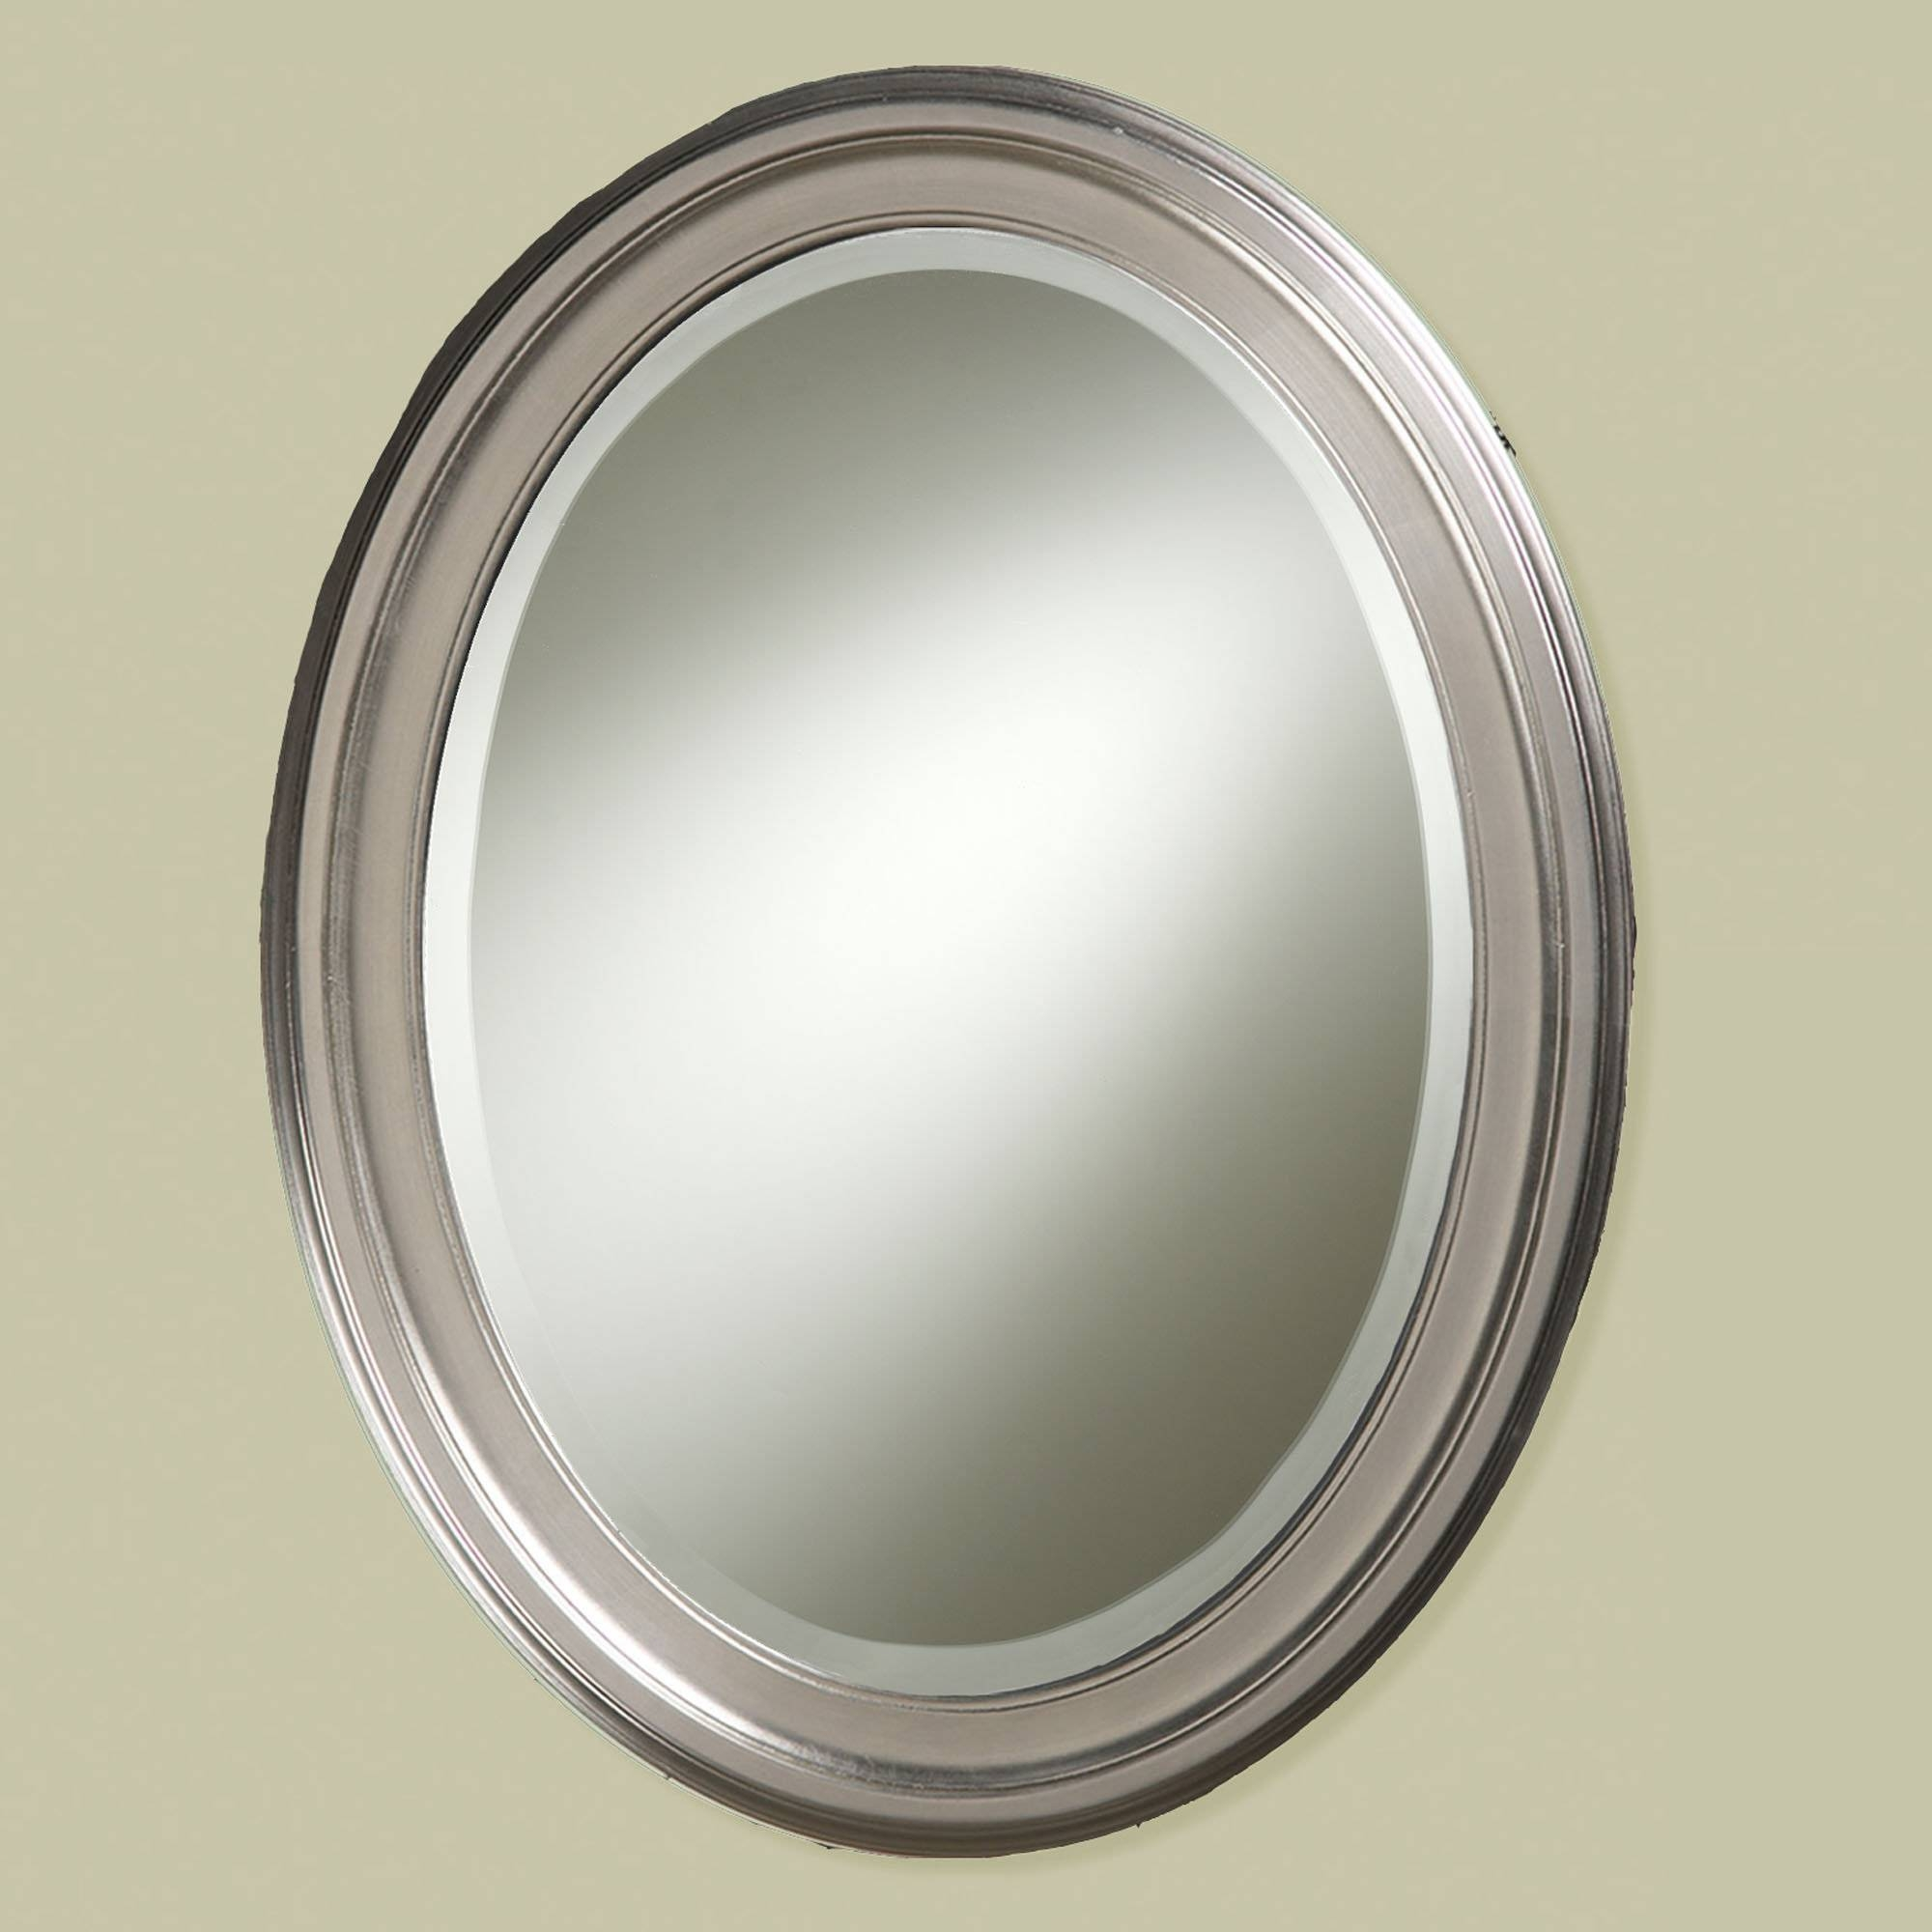 Bathroom Wall Mirrors Brushed Nickel 49 Trendy Interior Or Brushed throughout Silver Oval Wall Mirrors (Image 5 of 25)